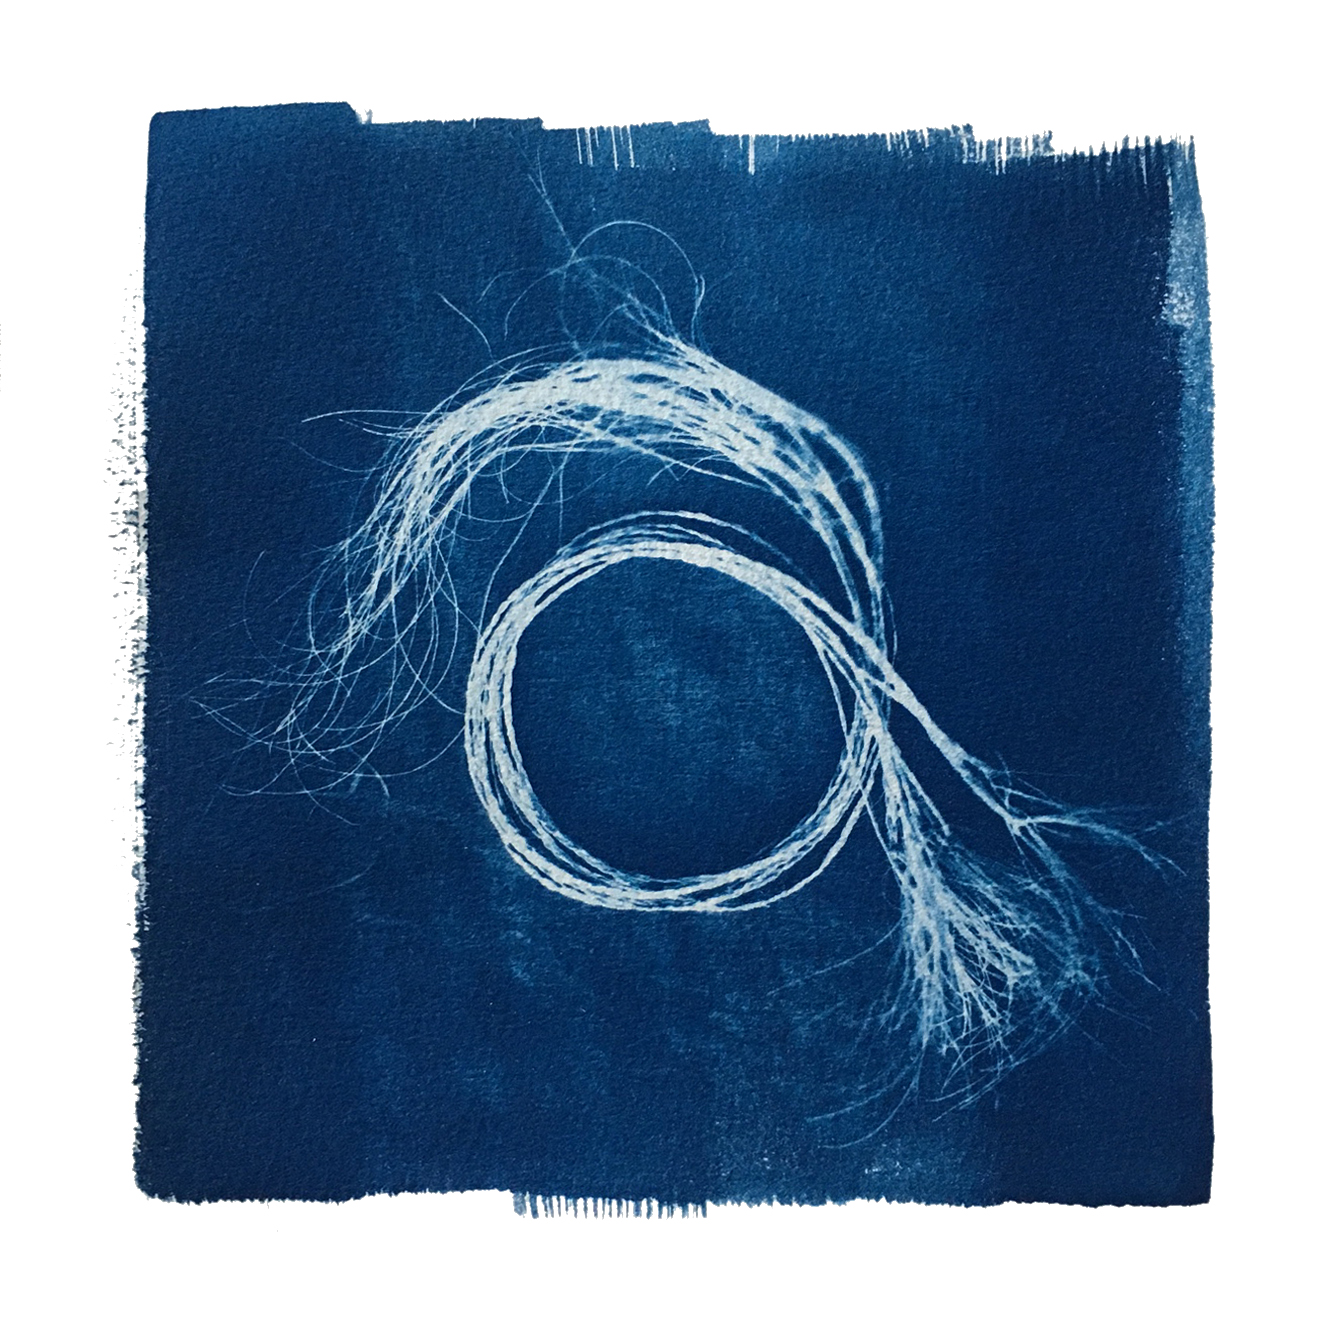 "TITLE /  Plaited Sabal Minor, No. 1  MEDIUM /  Cyanotype Print, Printed on 100% Cotton Paper  SIZE /  9"" x 9""  PRICE /  $275.00"